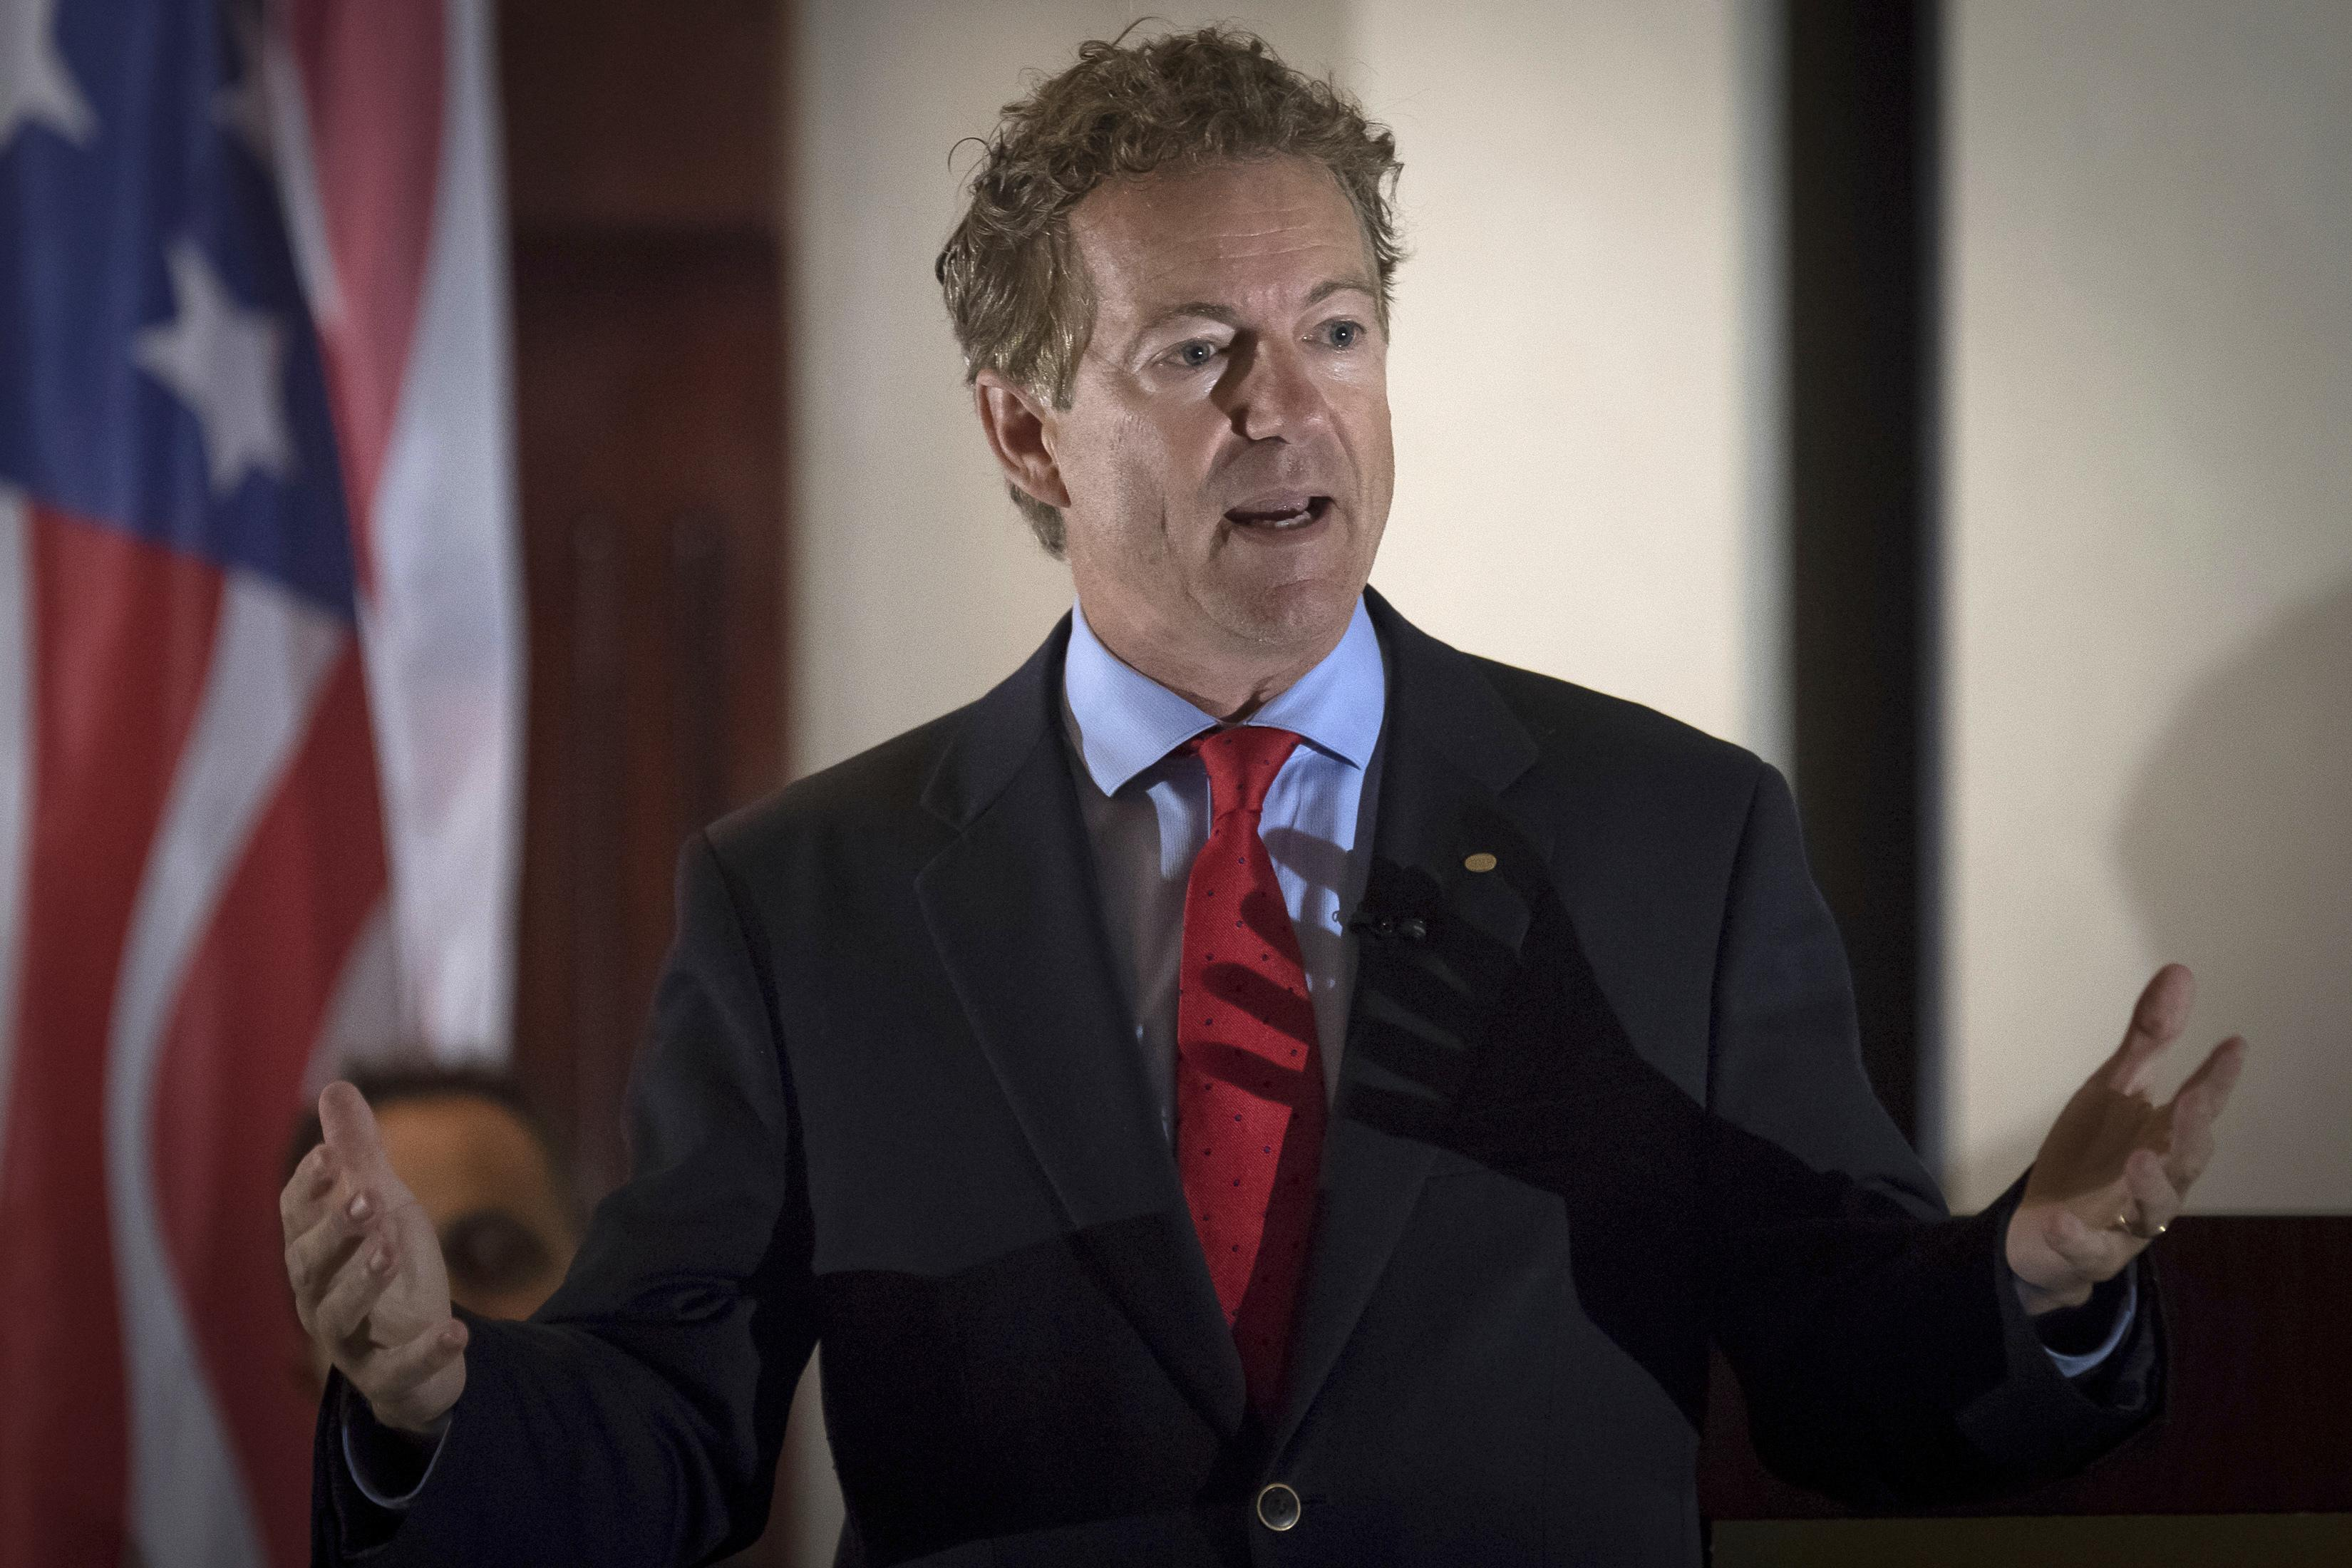 Rand Paul recovering from 5 broken ribs after assault at his home